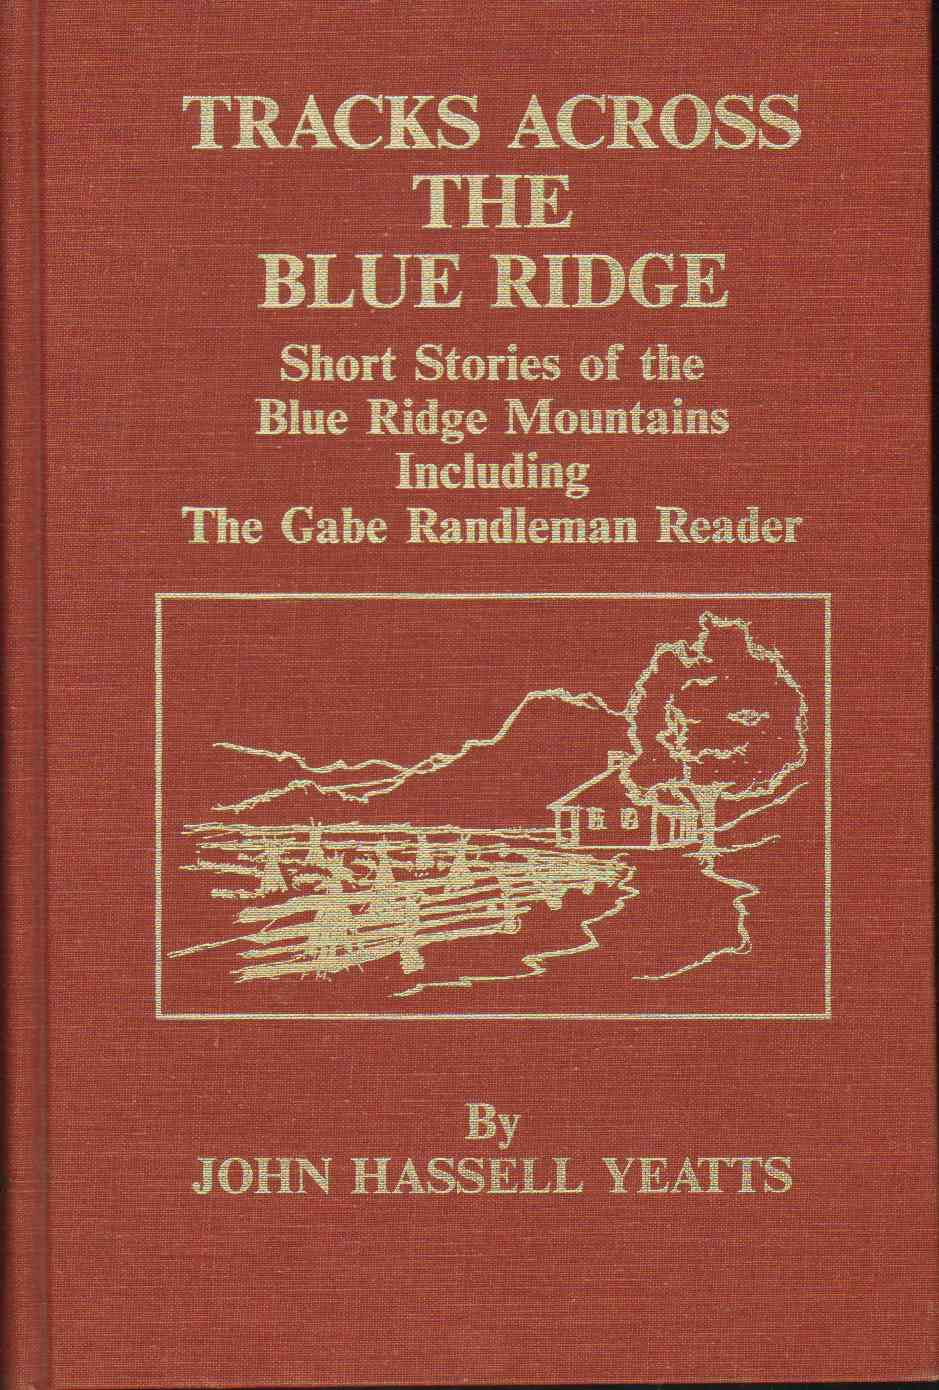 Image for TRACKS ACROSS THE BLUE RIDGE Short Stories of the Blue Ridge Mountains Including the Gabe Randleman Reader